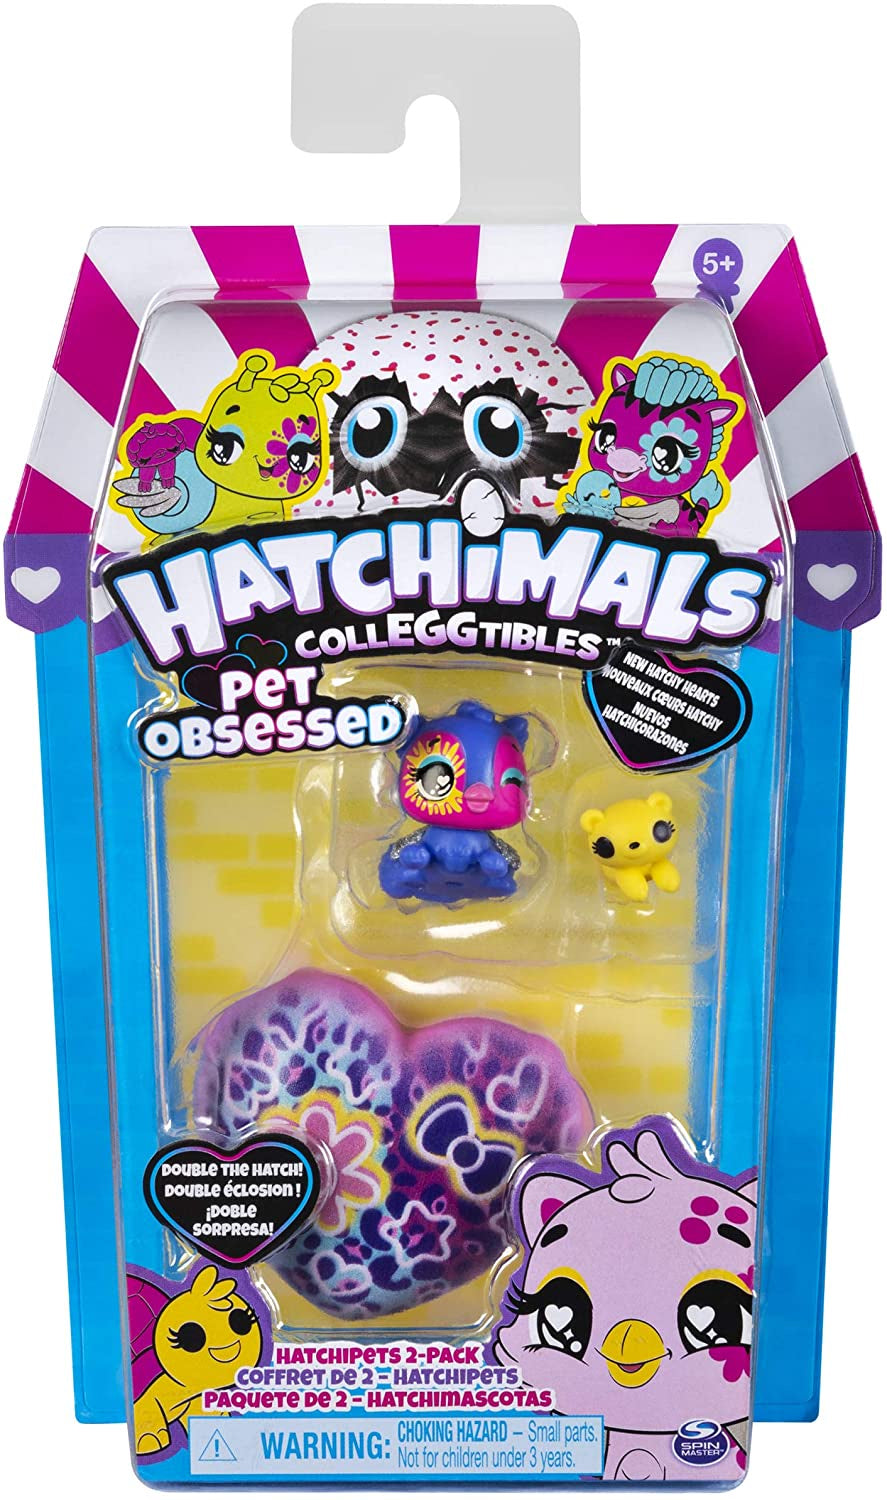 Hatchimals CollEGGtible Pet Obsessed Pet Shop 2pk